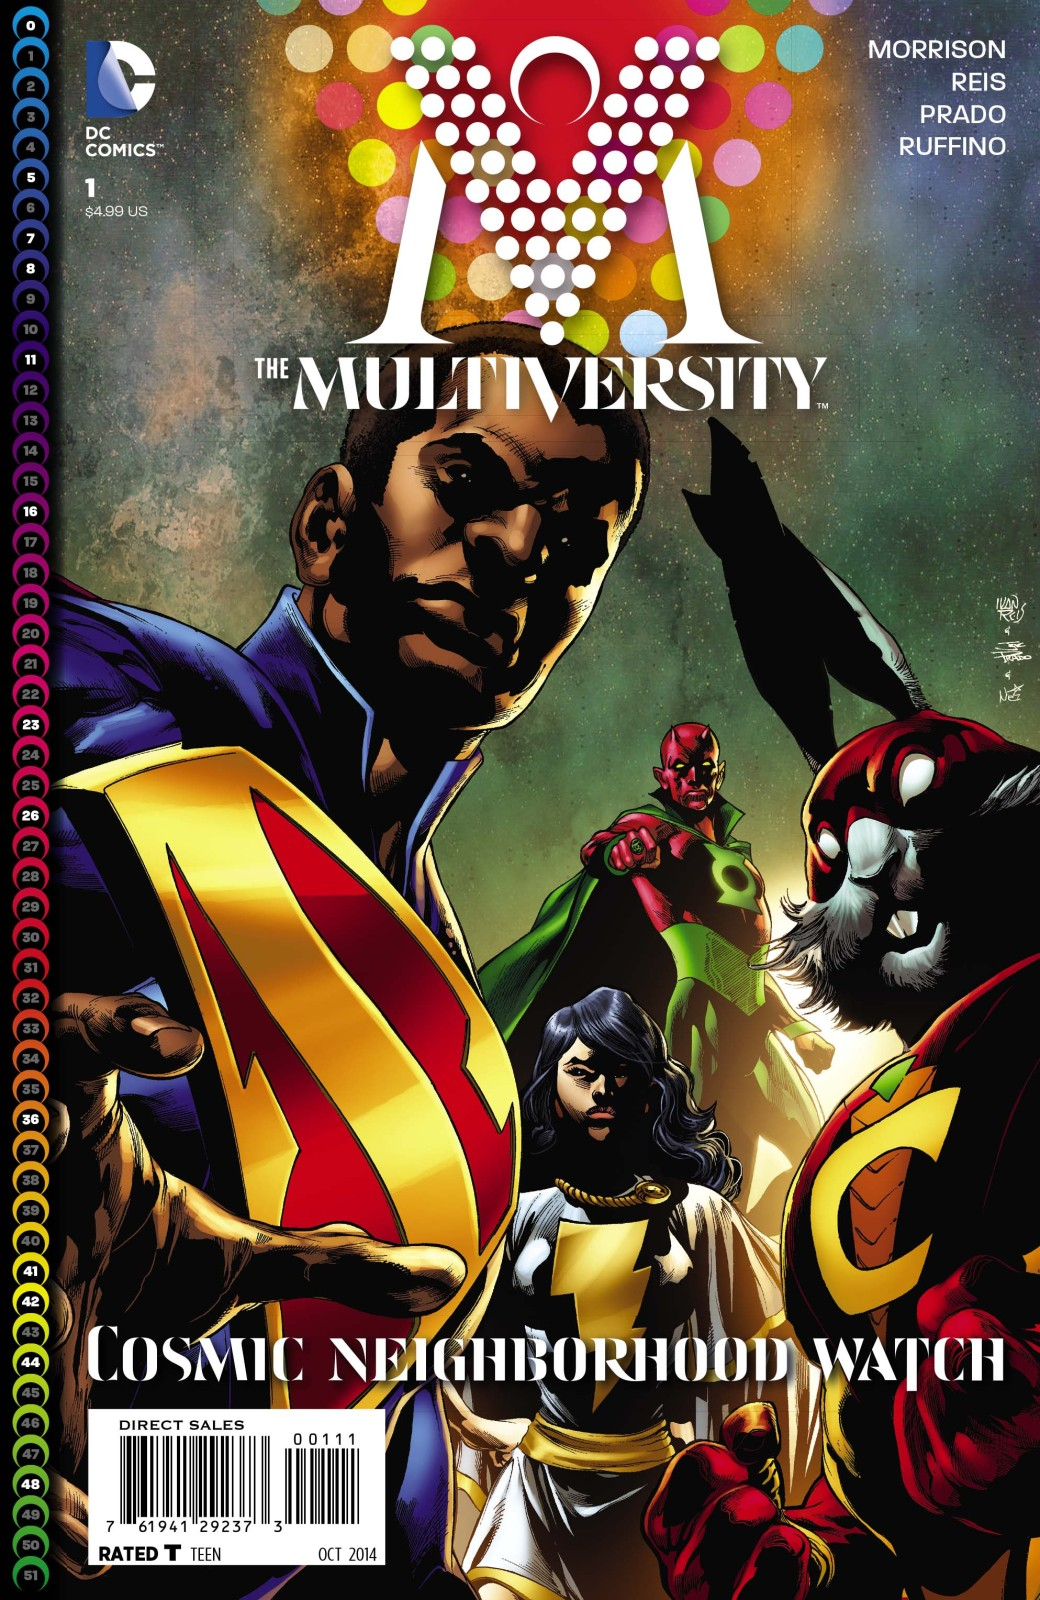 Preview The Multiversity #1